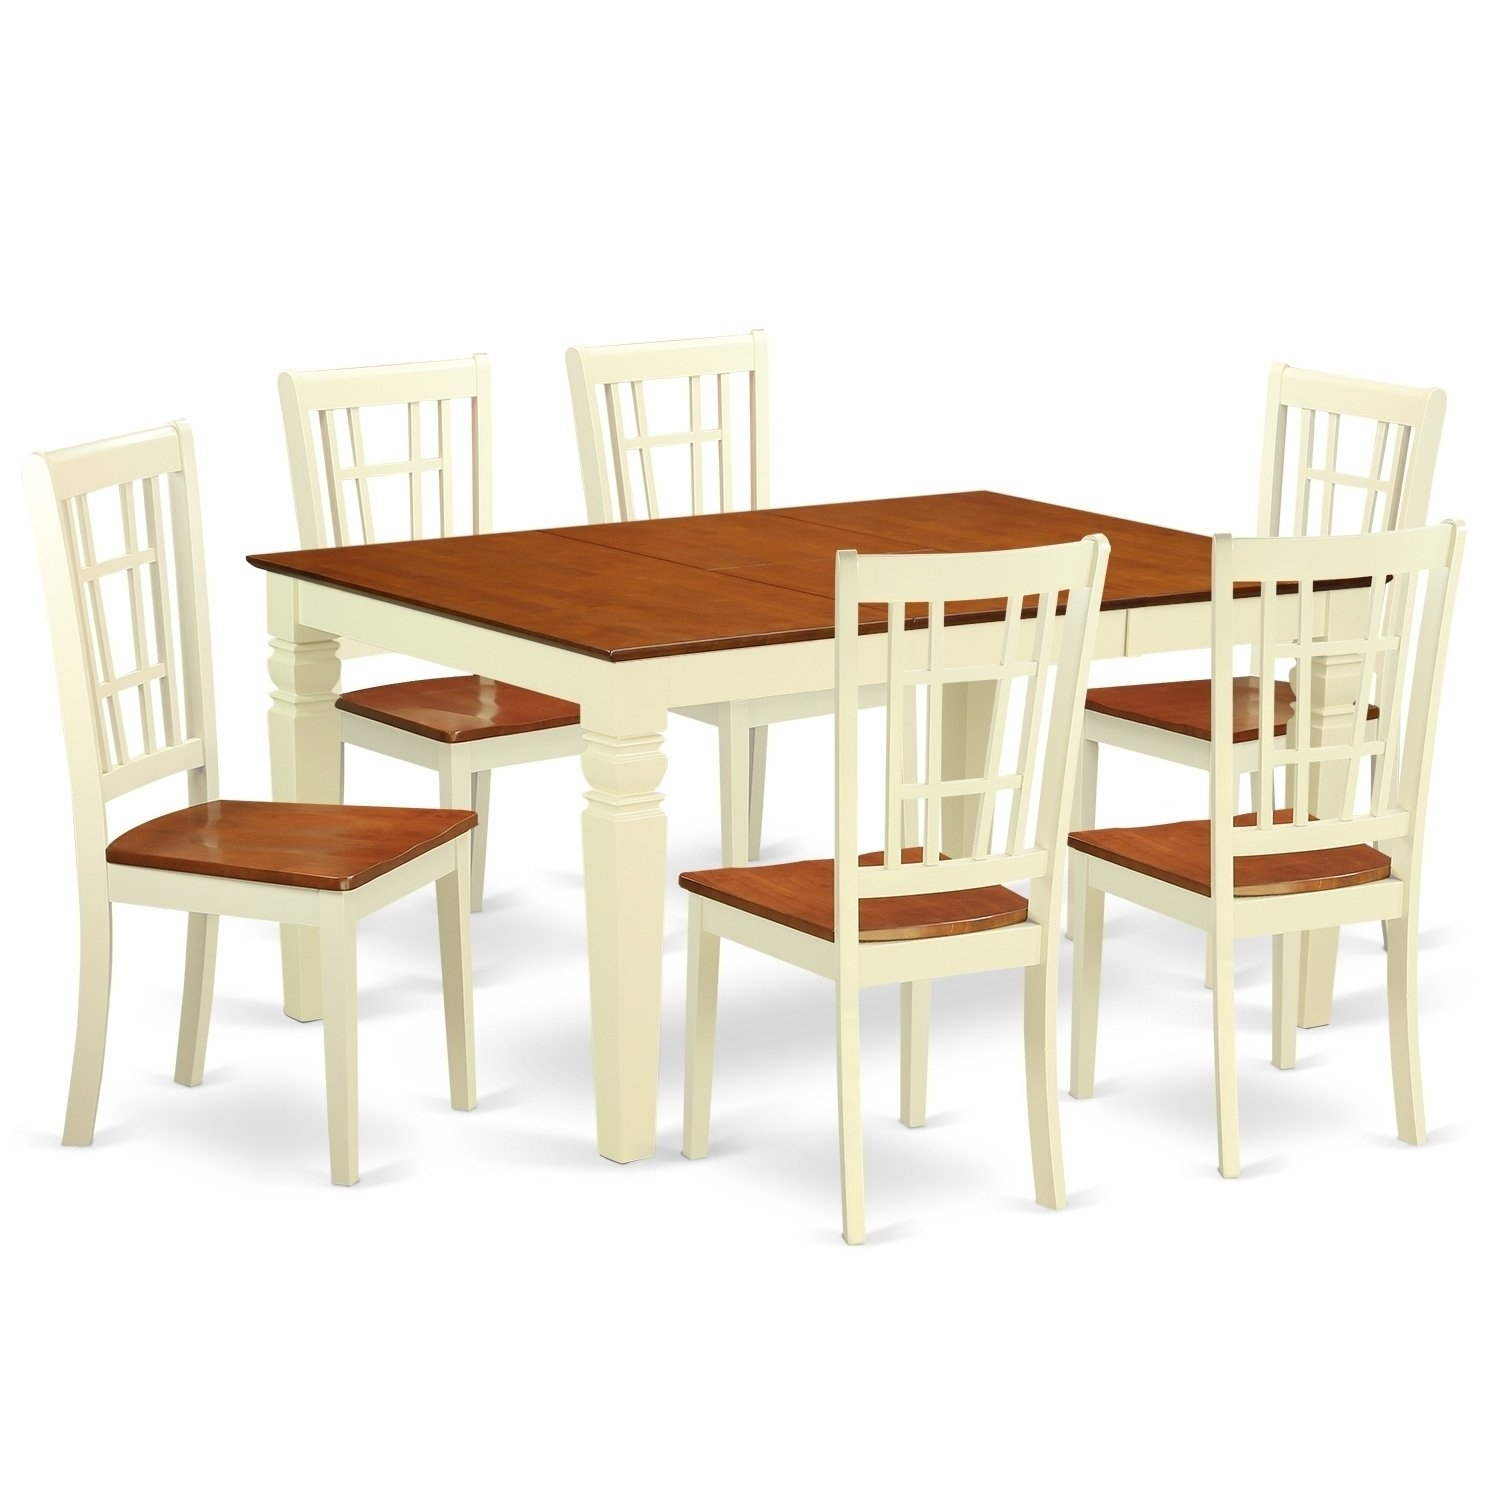 Shop Weni7 Bmk 7 Pc Kitchen Table Set With A Dining Table And 6 Within Current Gavin 6 Piece Dining Sets With Clint Side Chairs (Image 18 of 20)